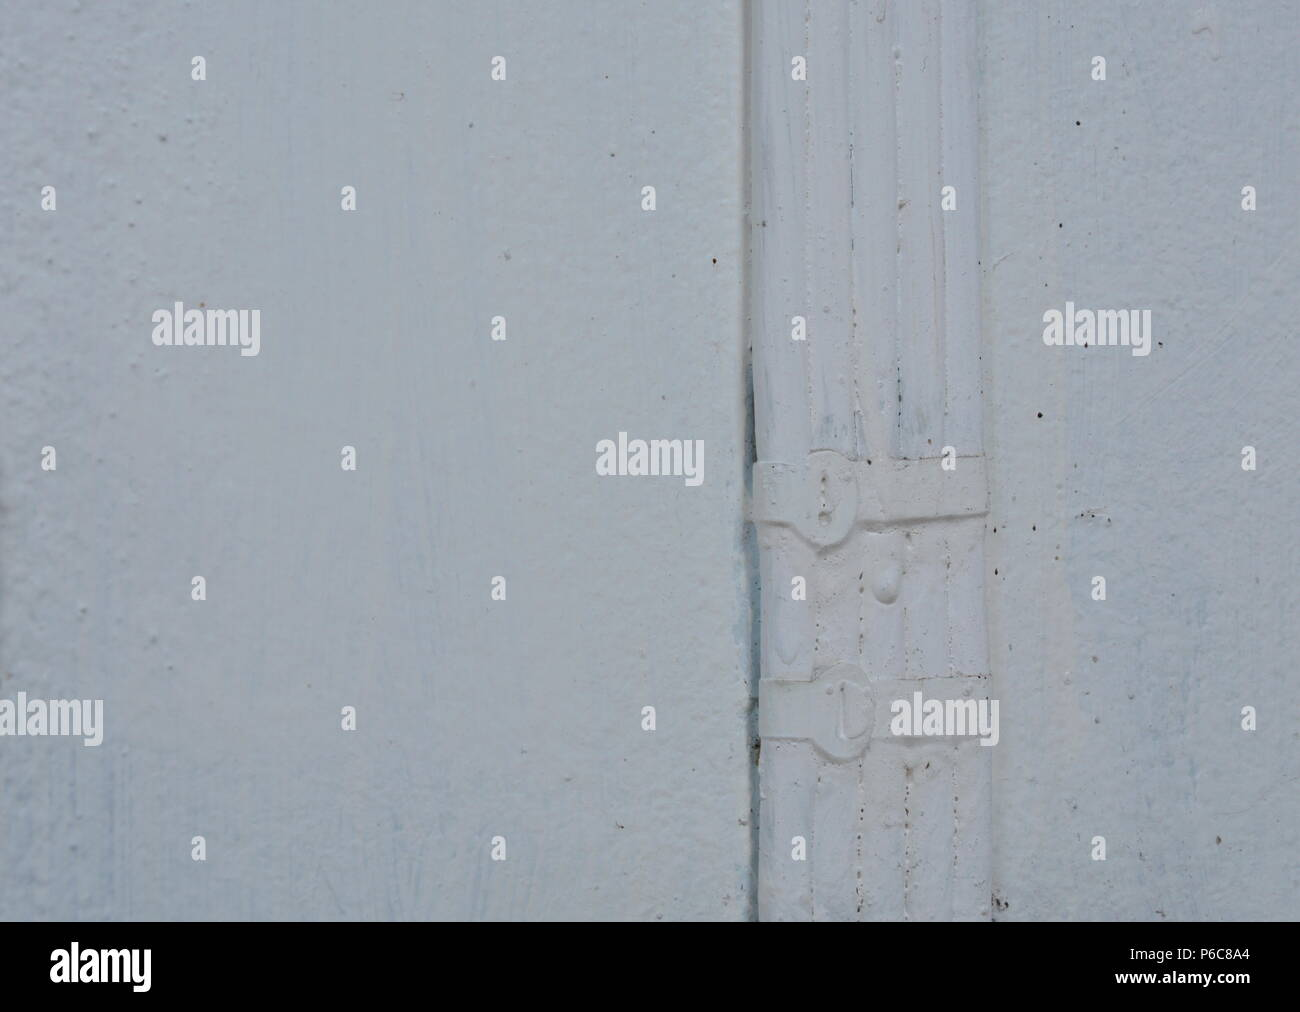 Light Insulation Stock Photos & Light Insulation Stock Images - Alamy